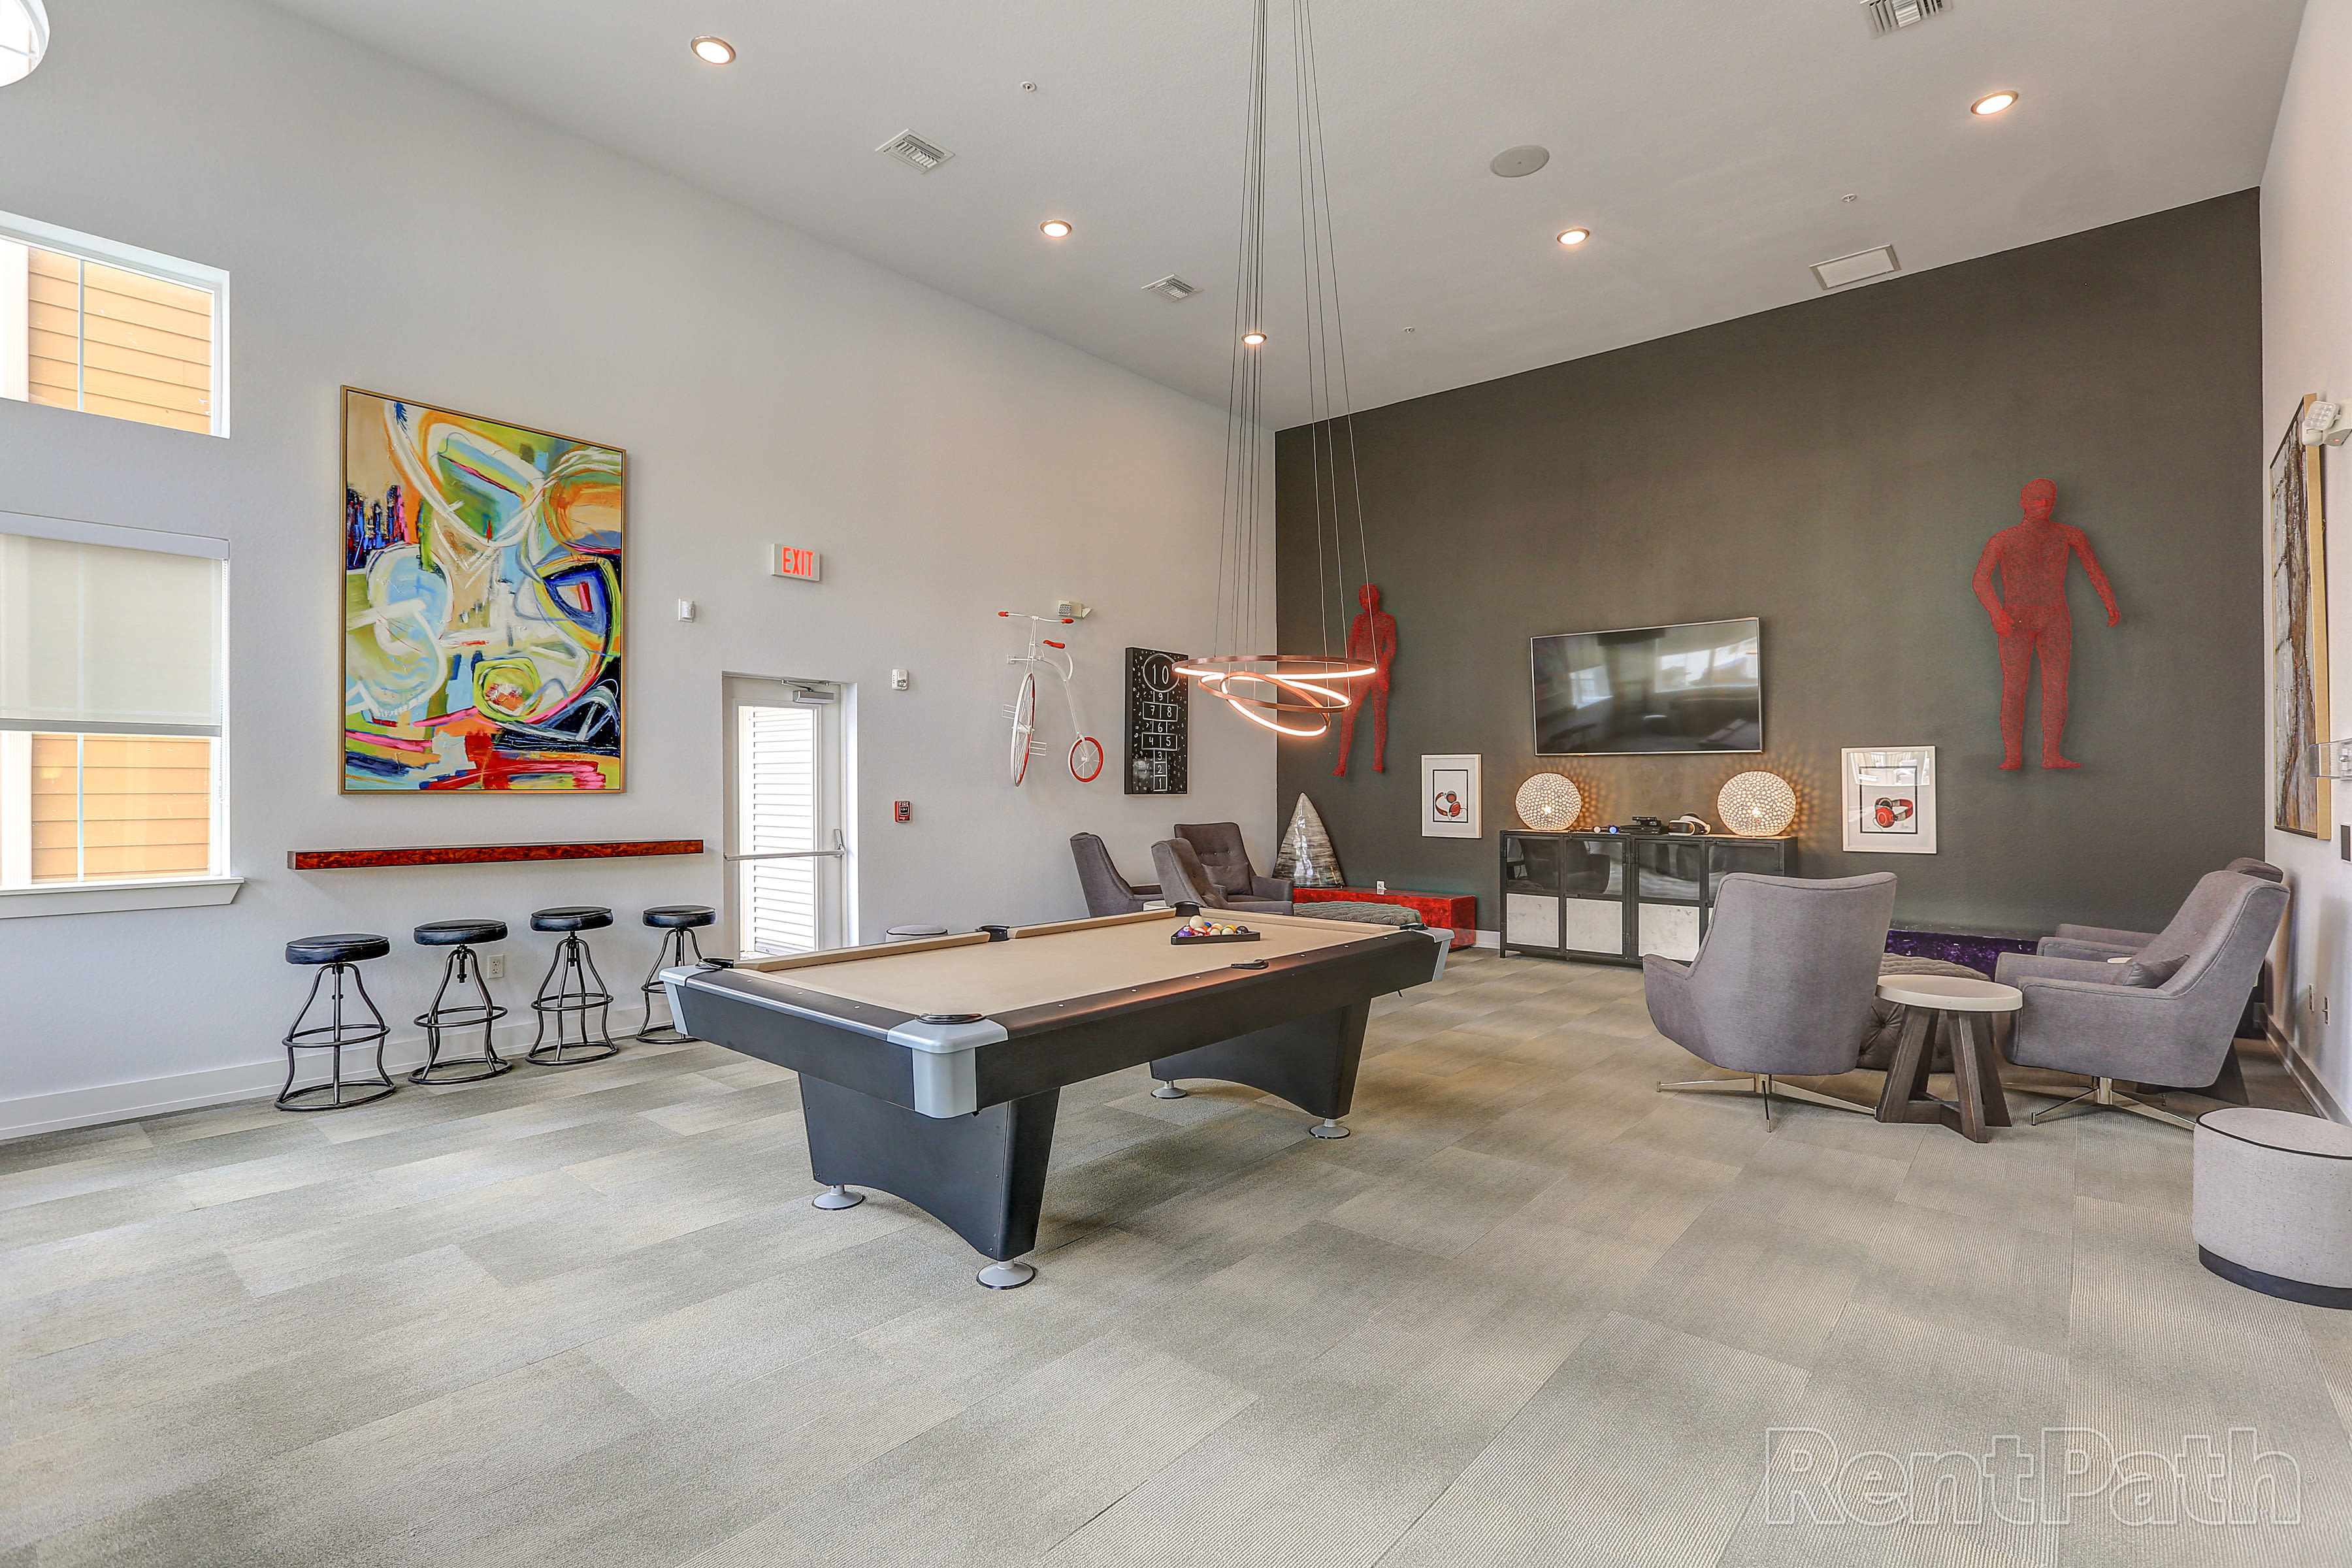 Pool table at Lola Apartments in Riverview, FL